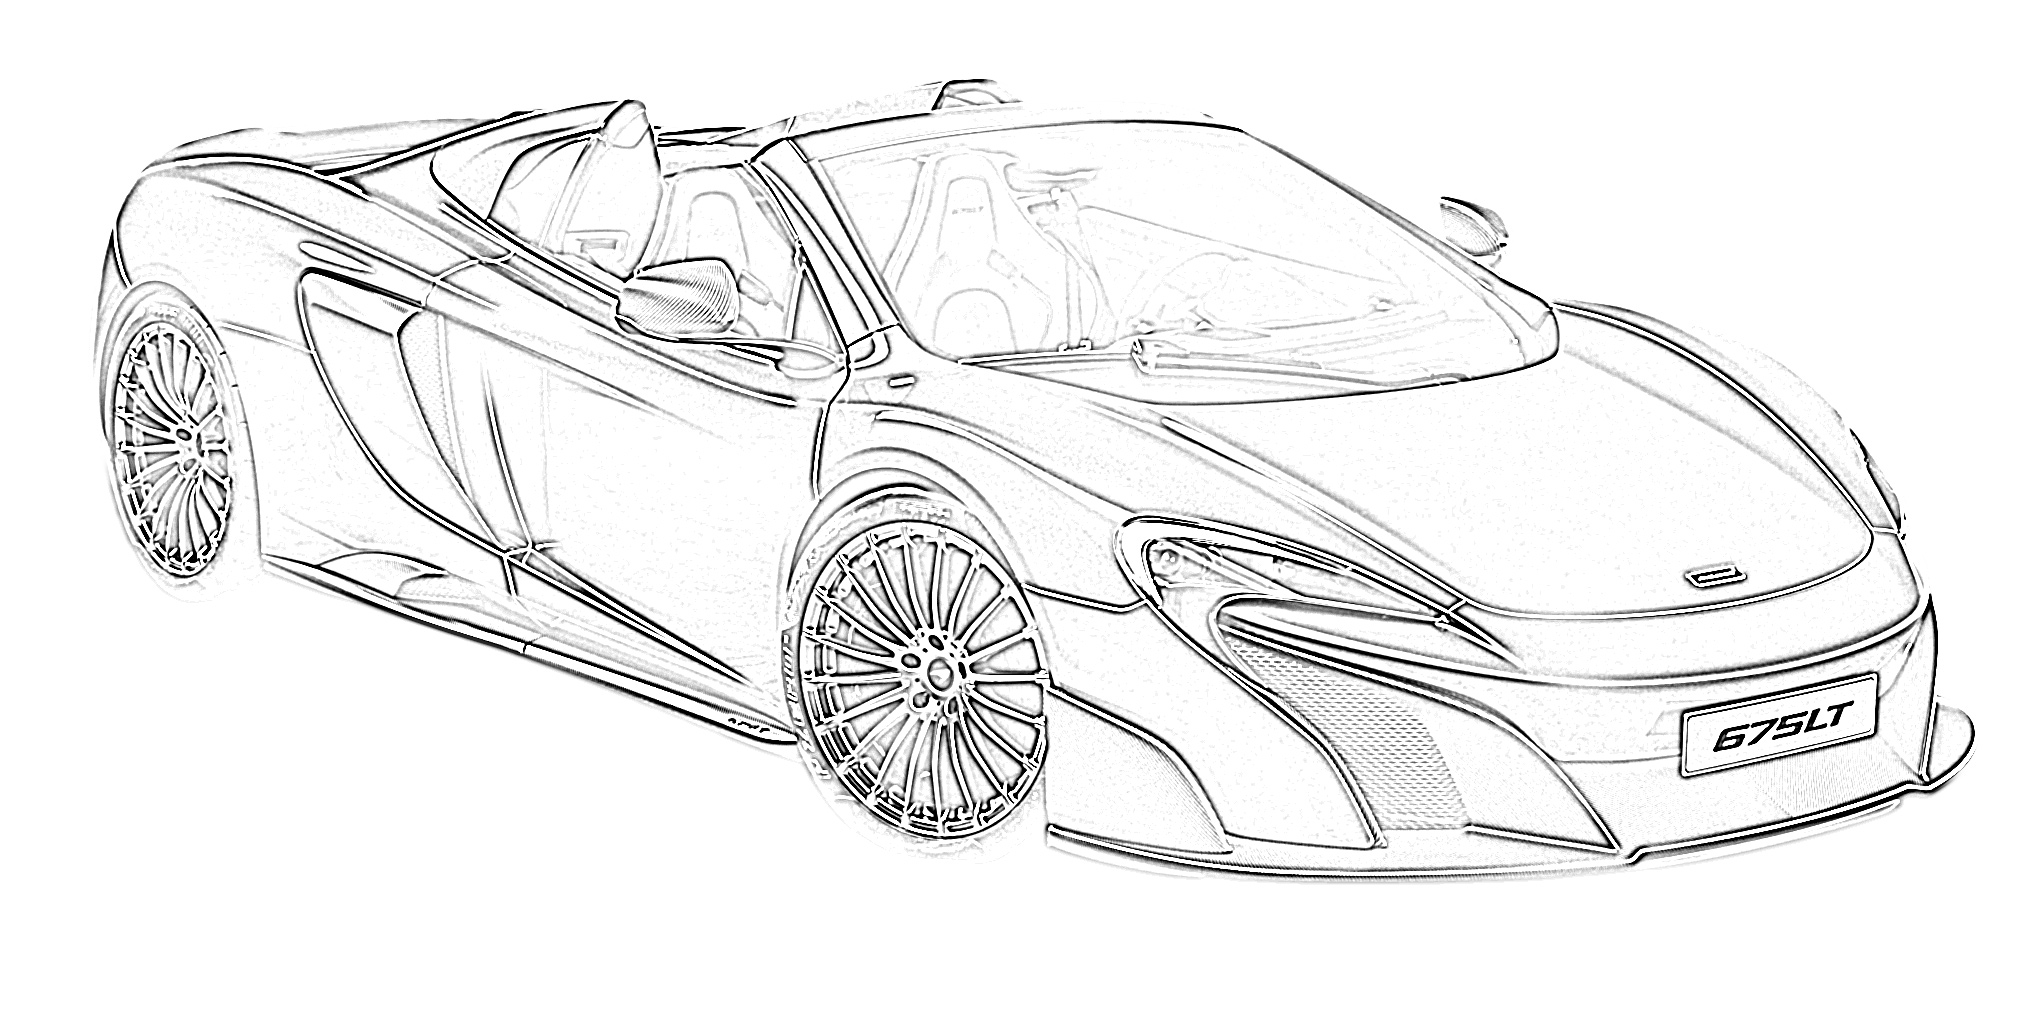 Sports car mclaren 675LT coloring page